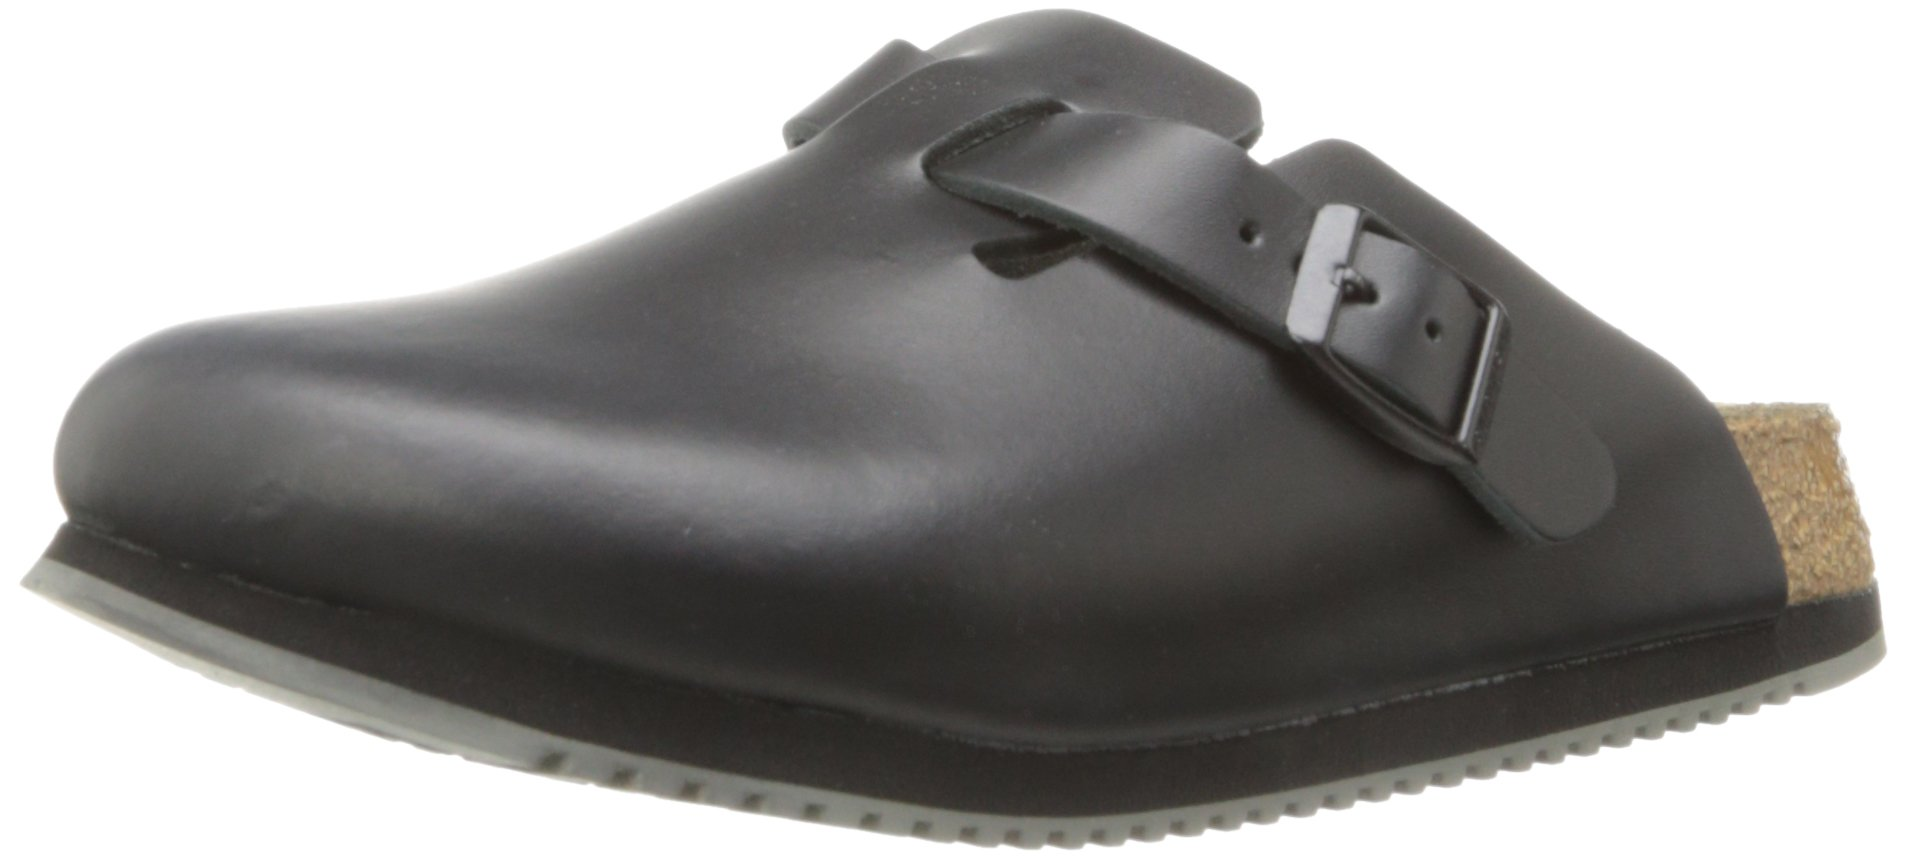 Birkenstock Unisex Professional Boston Super Grip Leather Slip Resistant Work Shoe,Black,44 M EU